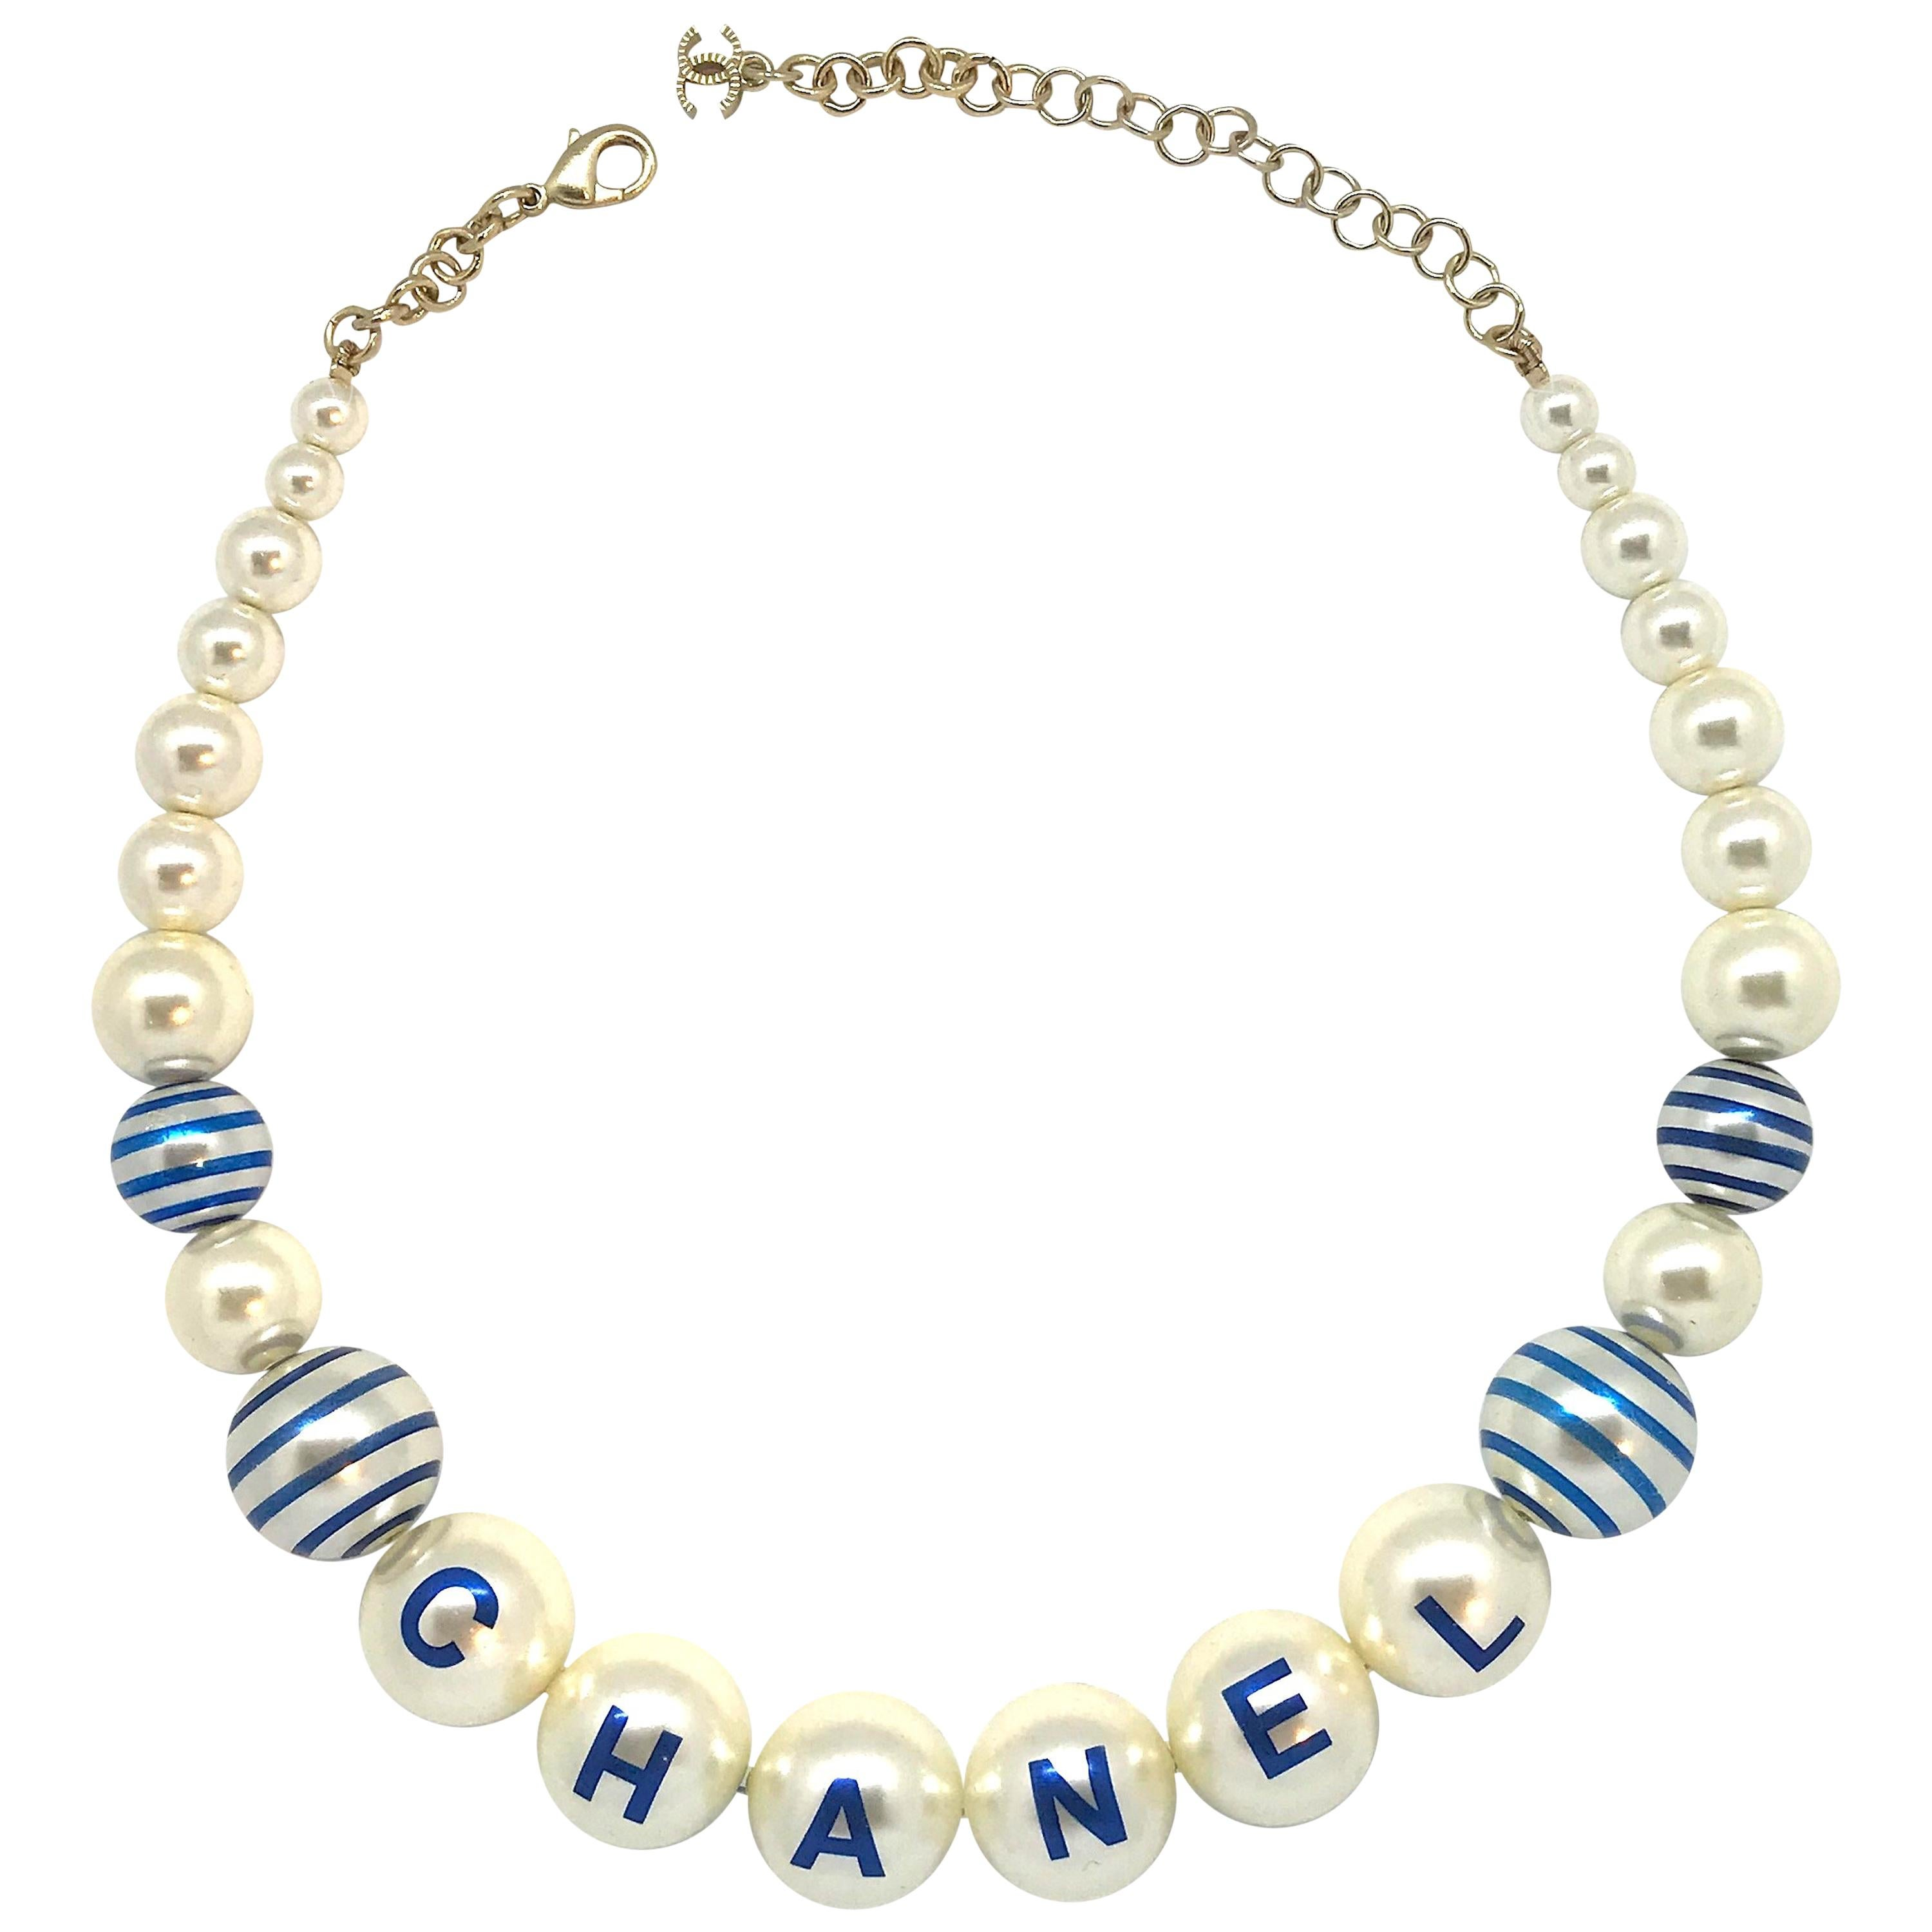 ff4a5423aca37 Chanel Spring / Summer 2019 Pearl Necklace